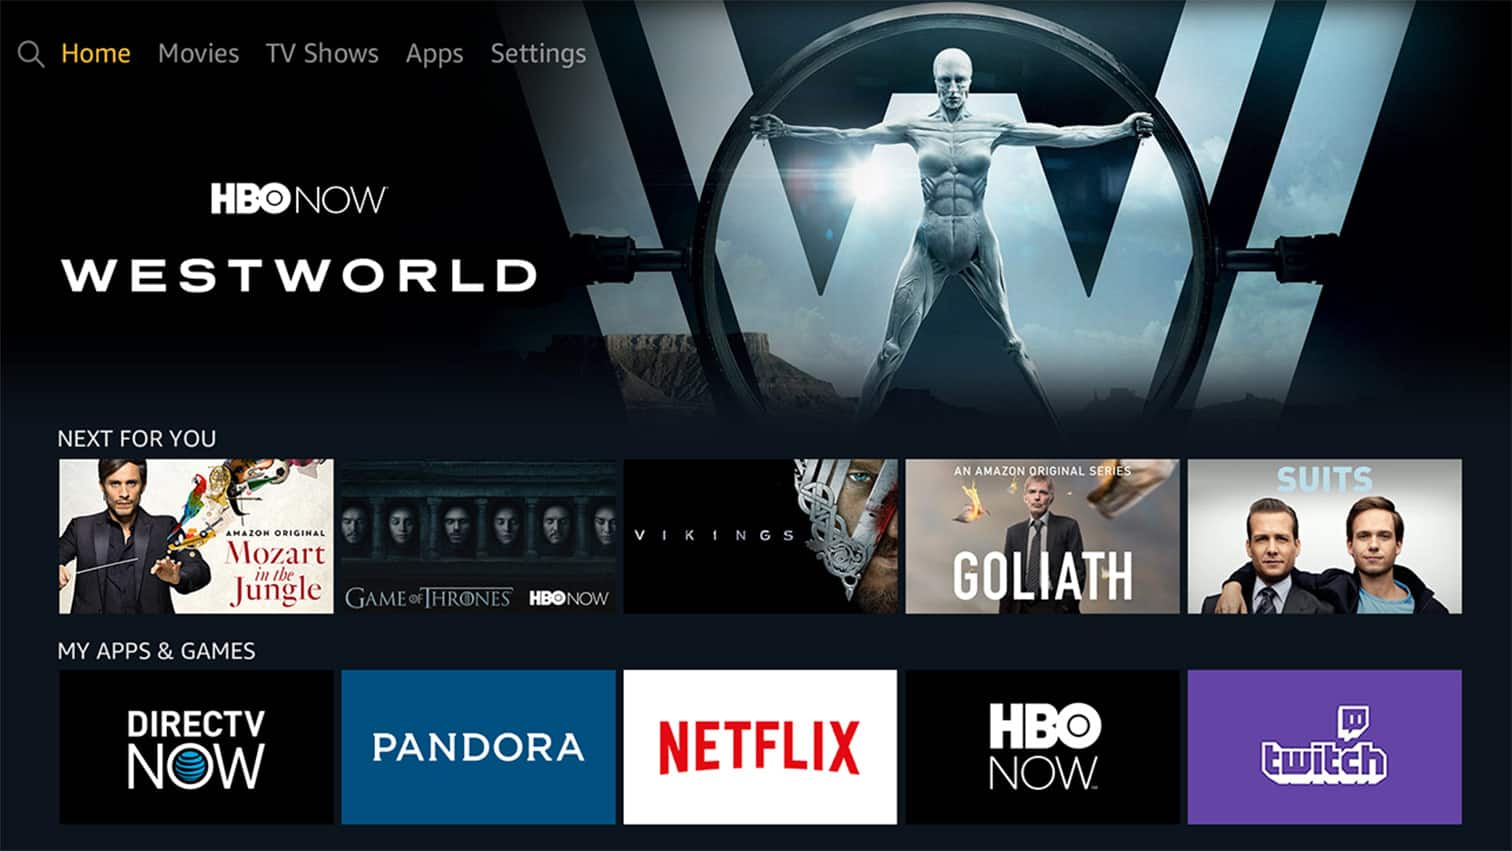 DIRECTV NOW: Free Amazon Fire Stick with 1 month purchase. ~$35